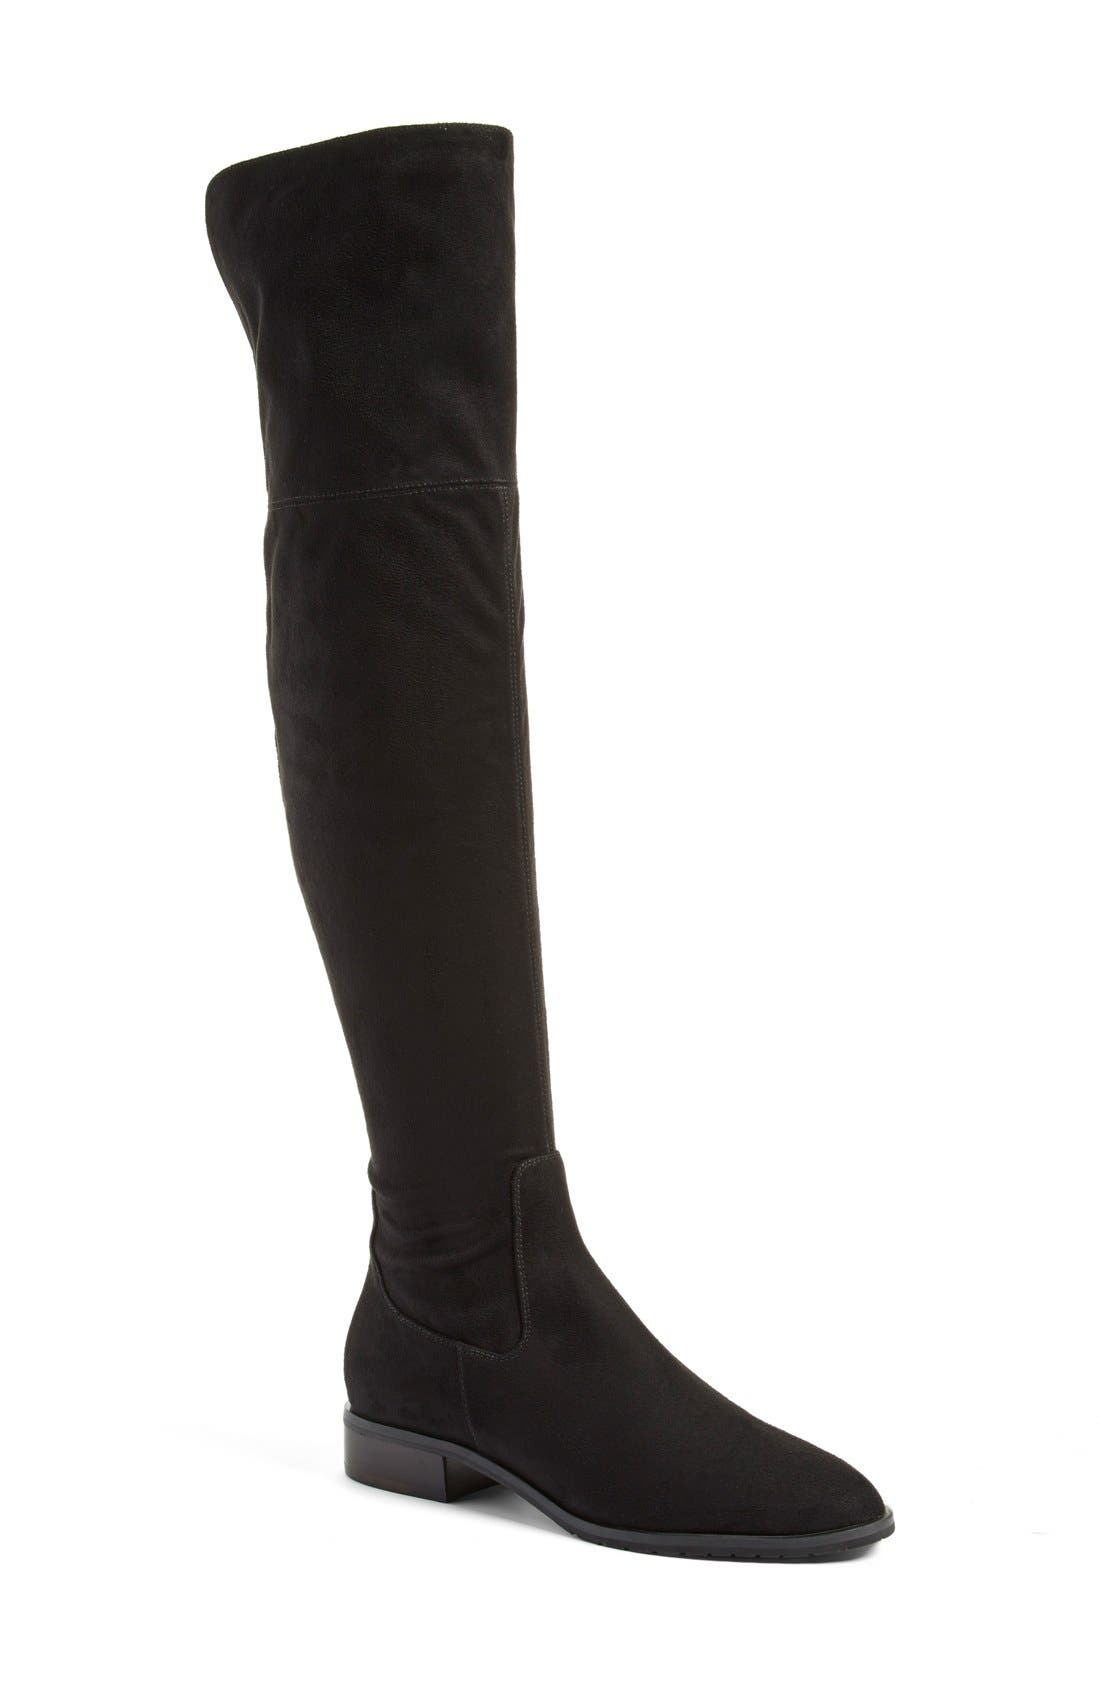 'Luci' Over the Knee Boot,                         Main,                         color, 001